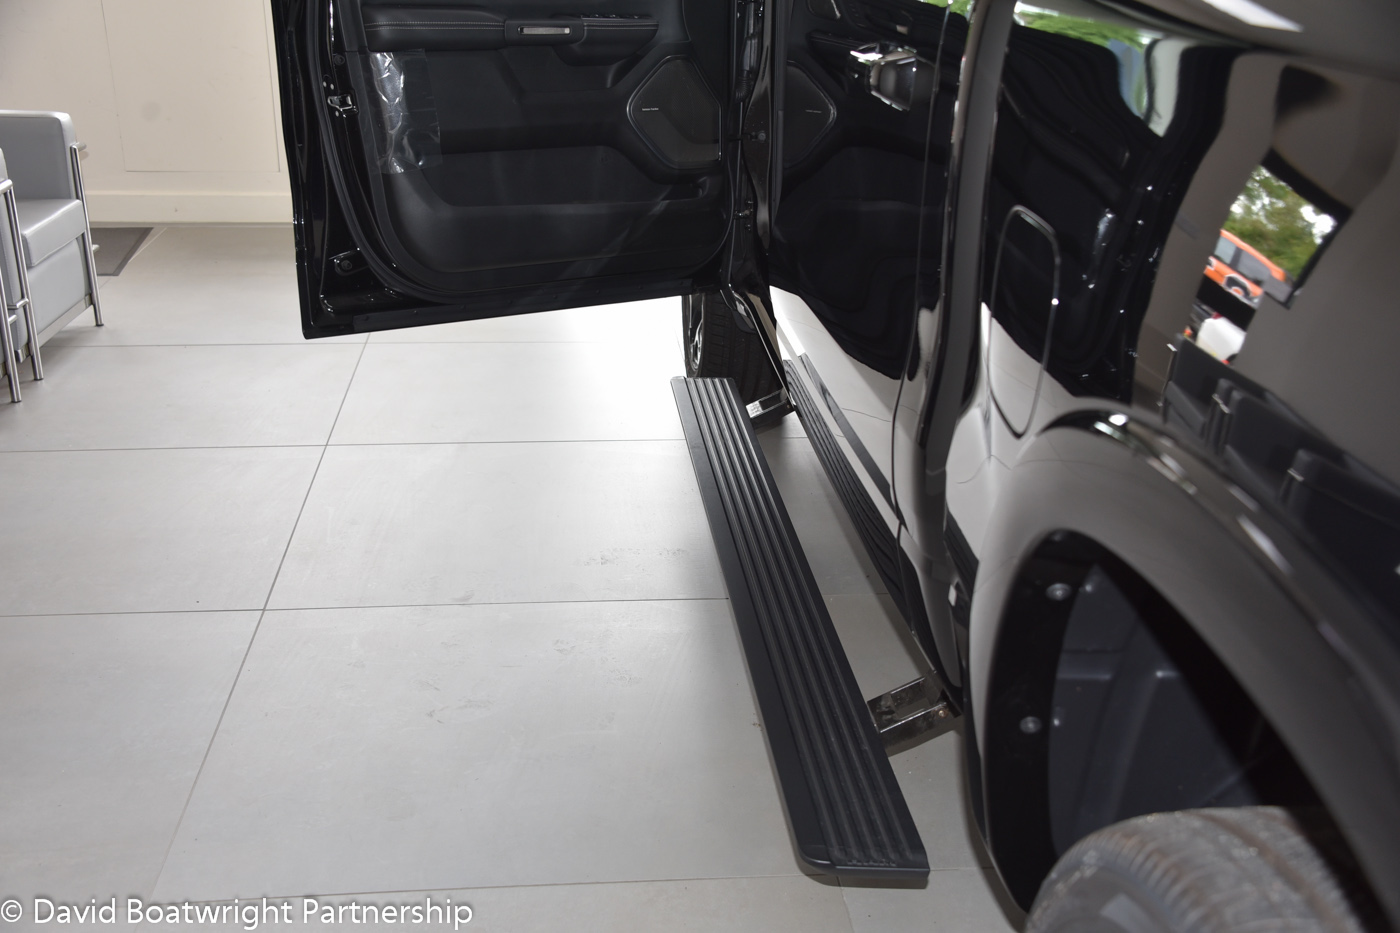 Reclining Rear Seats - New Dodge Ram Limited Black Appearance for sale UK